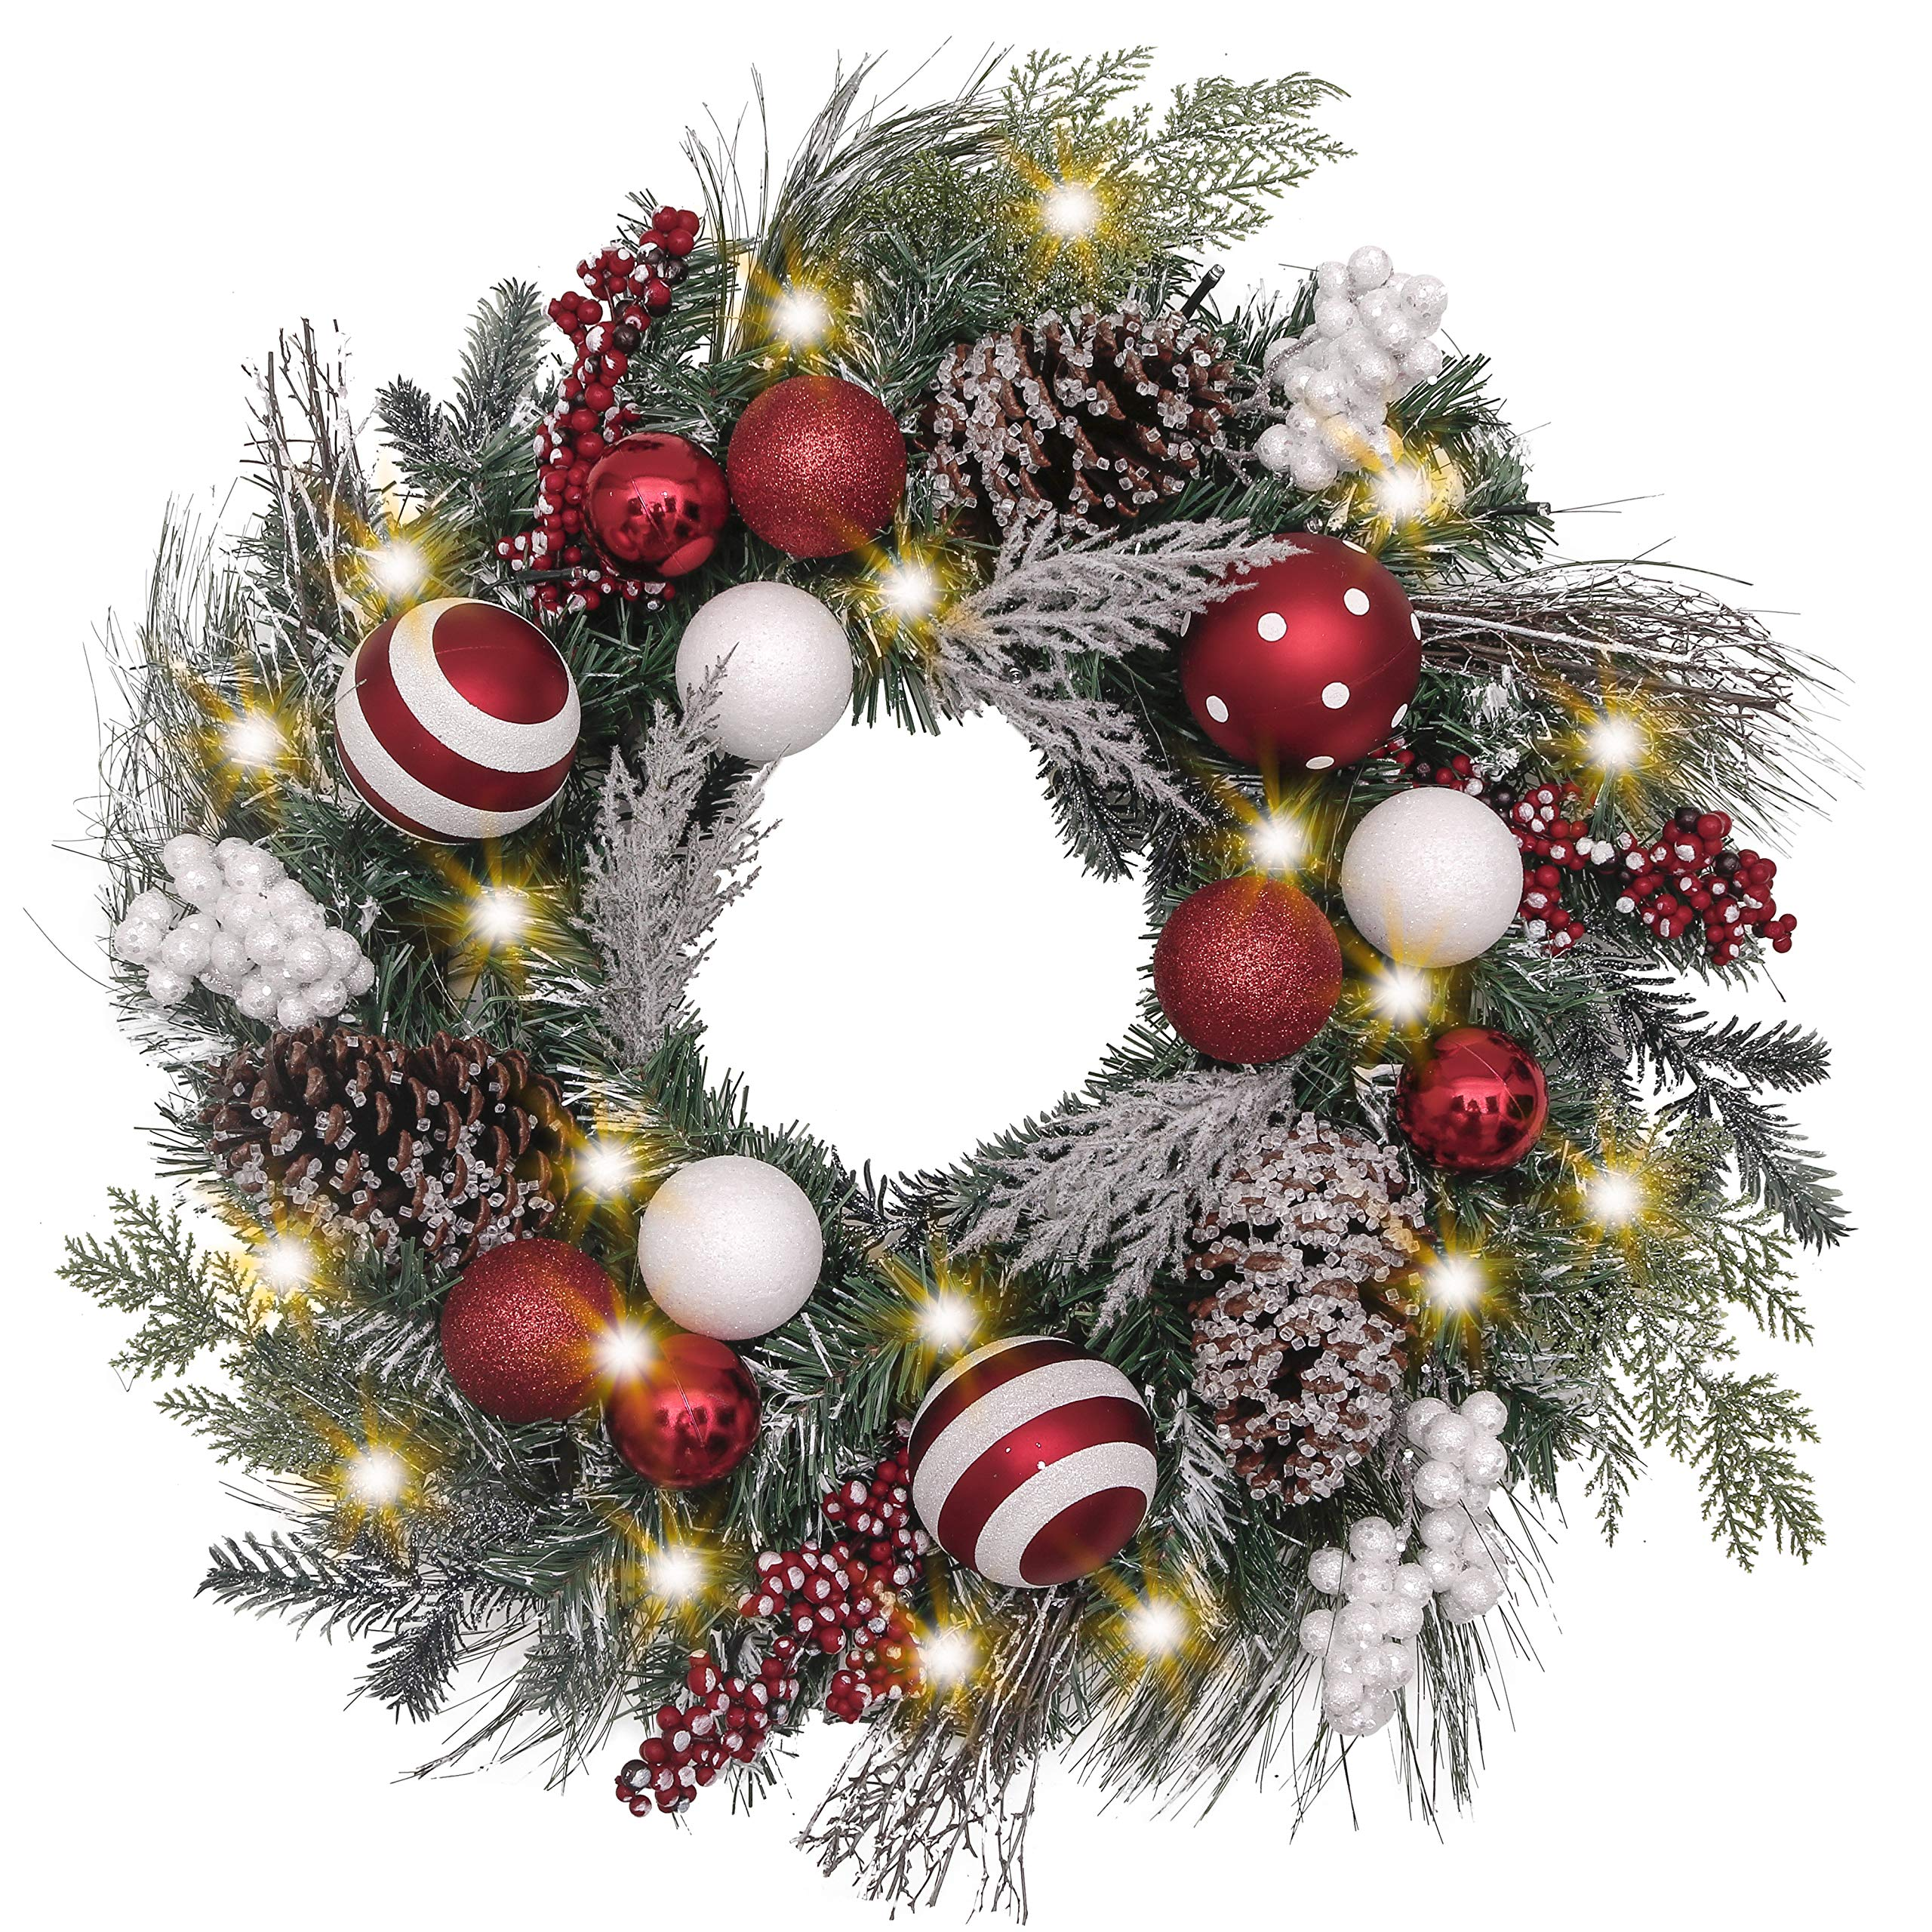 Valery Madelyn Pre-Lit 24 Inch Traditional Red White Christmas Wreath for Front Door with Ball Ornaments, Berries and Pine Cones, Battery Operated 20 LED Lights by Valery Madelyn